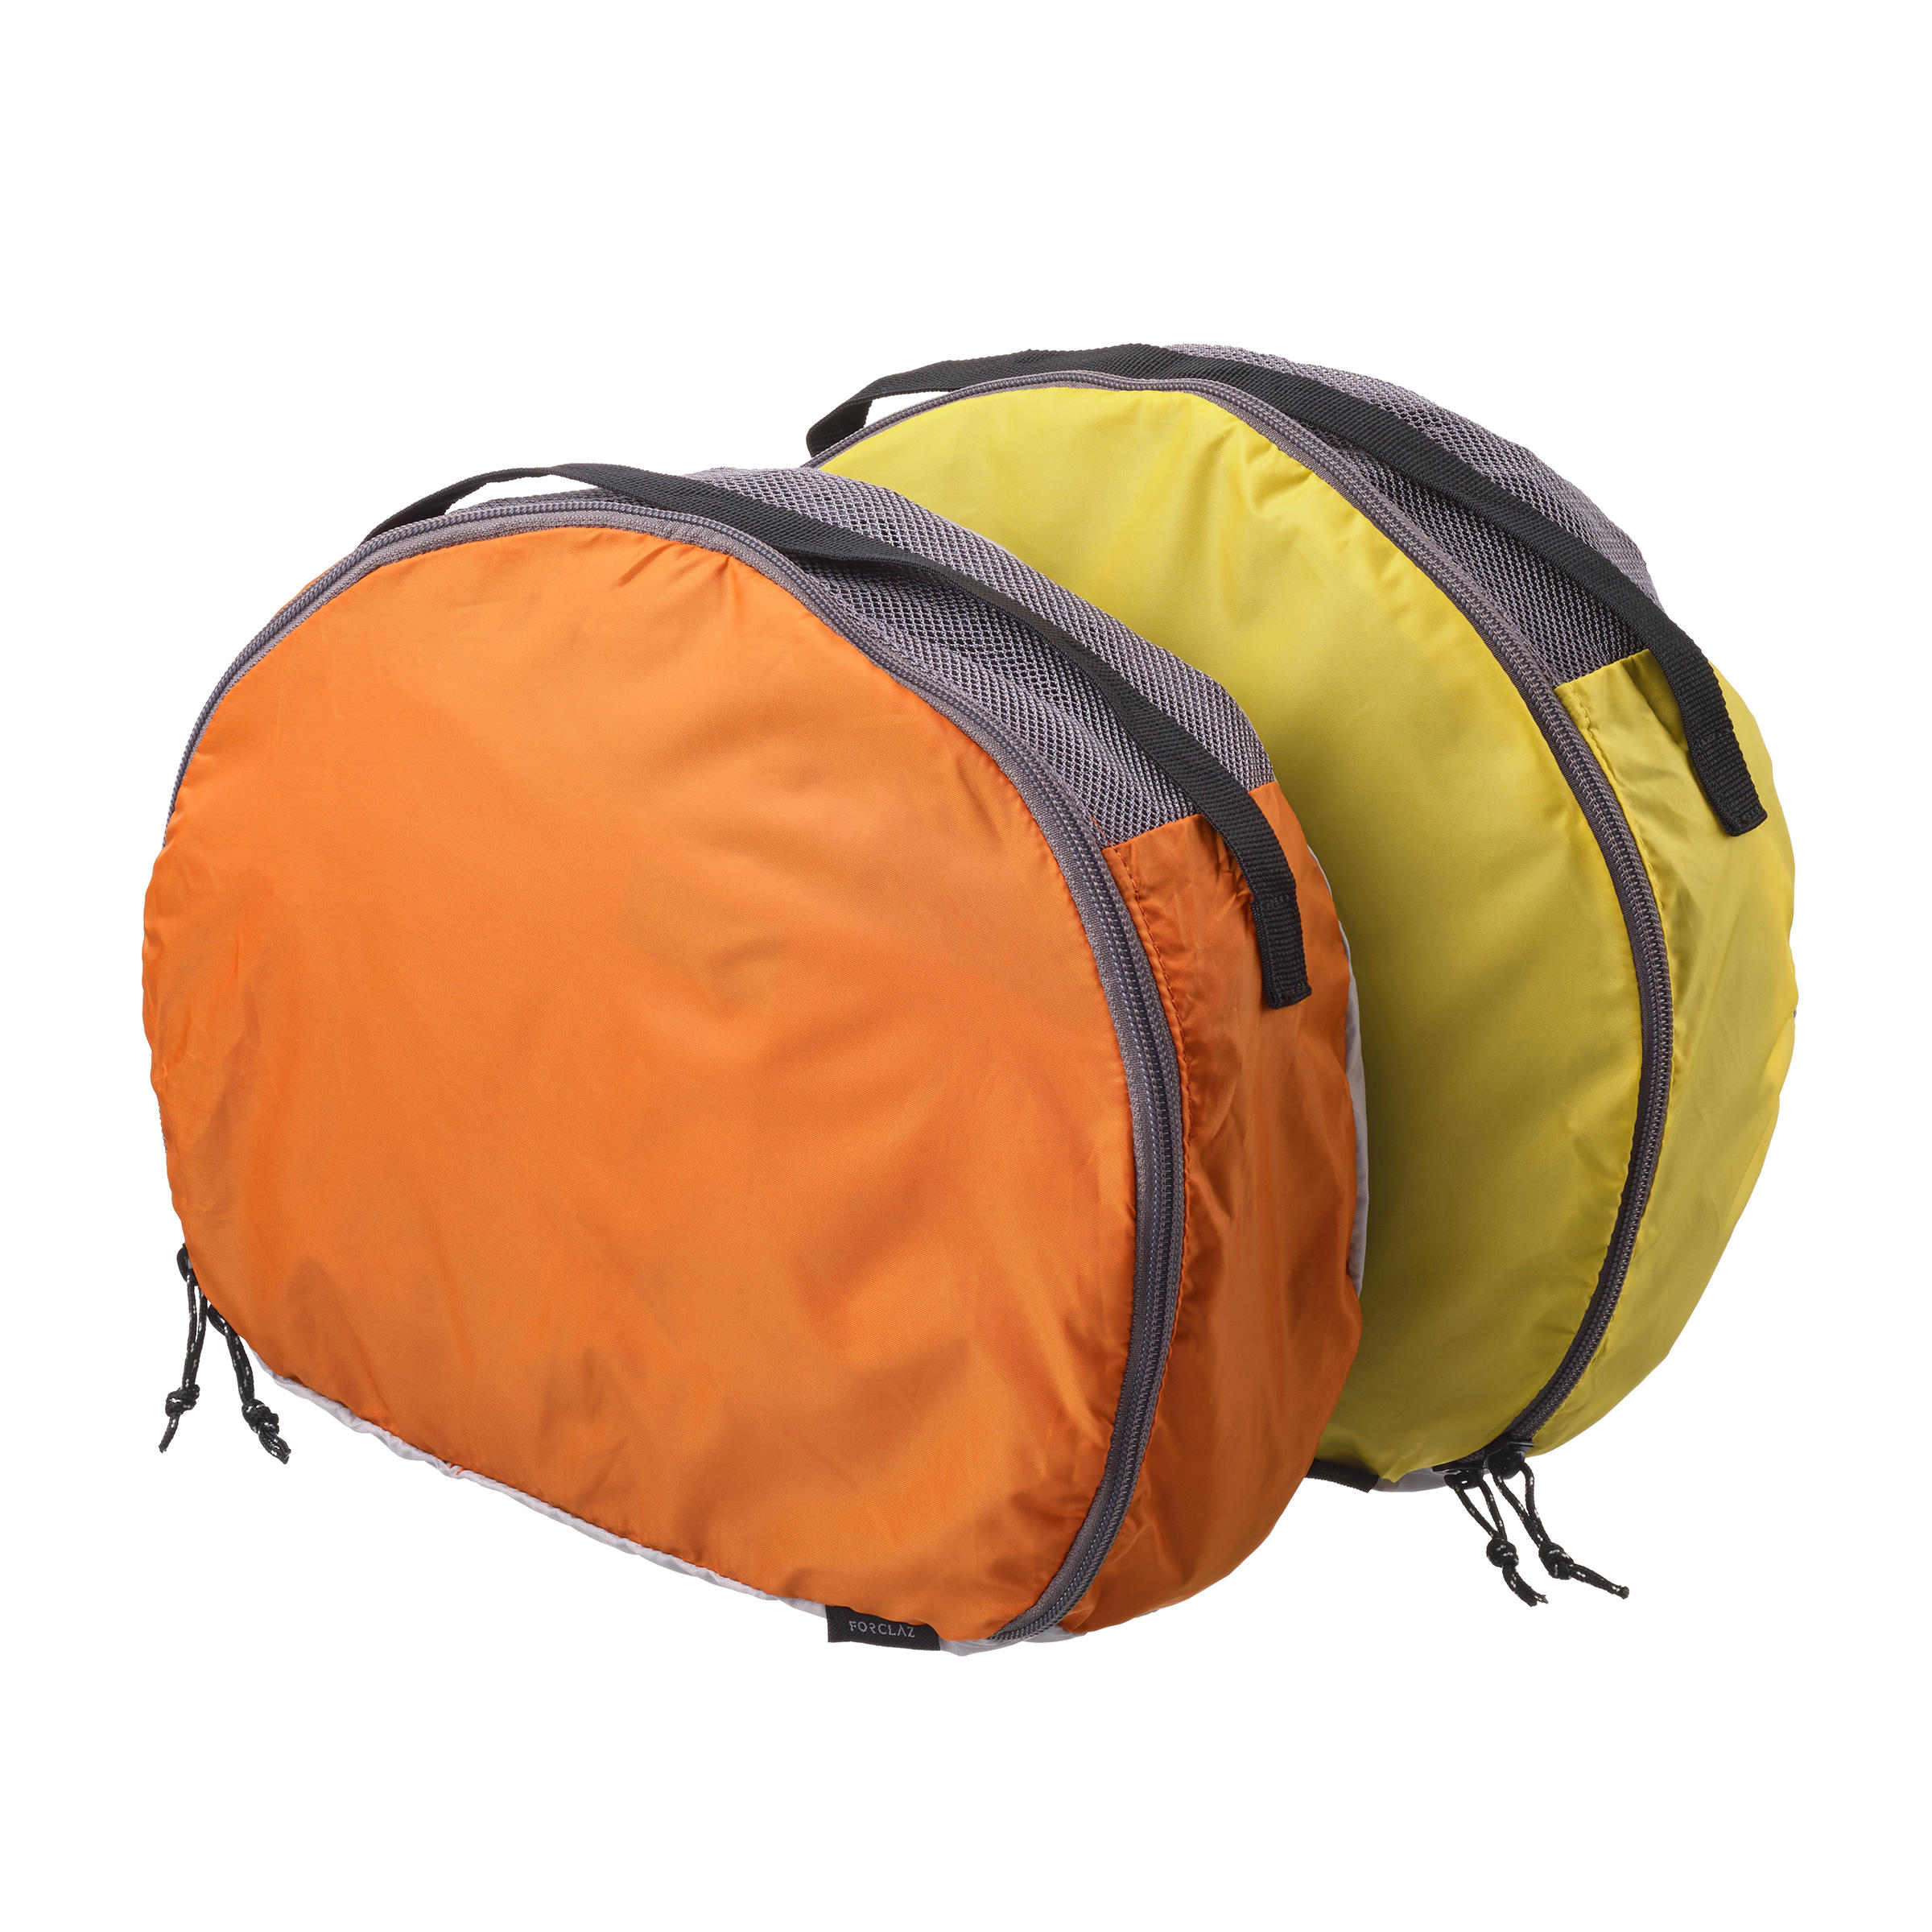 Pack of 2 half-moon storage bags for 50 to 60l bags